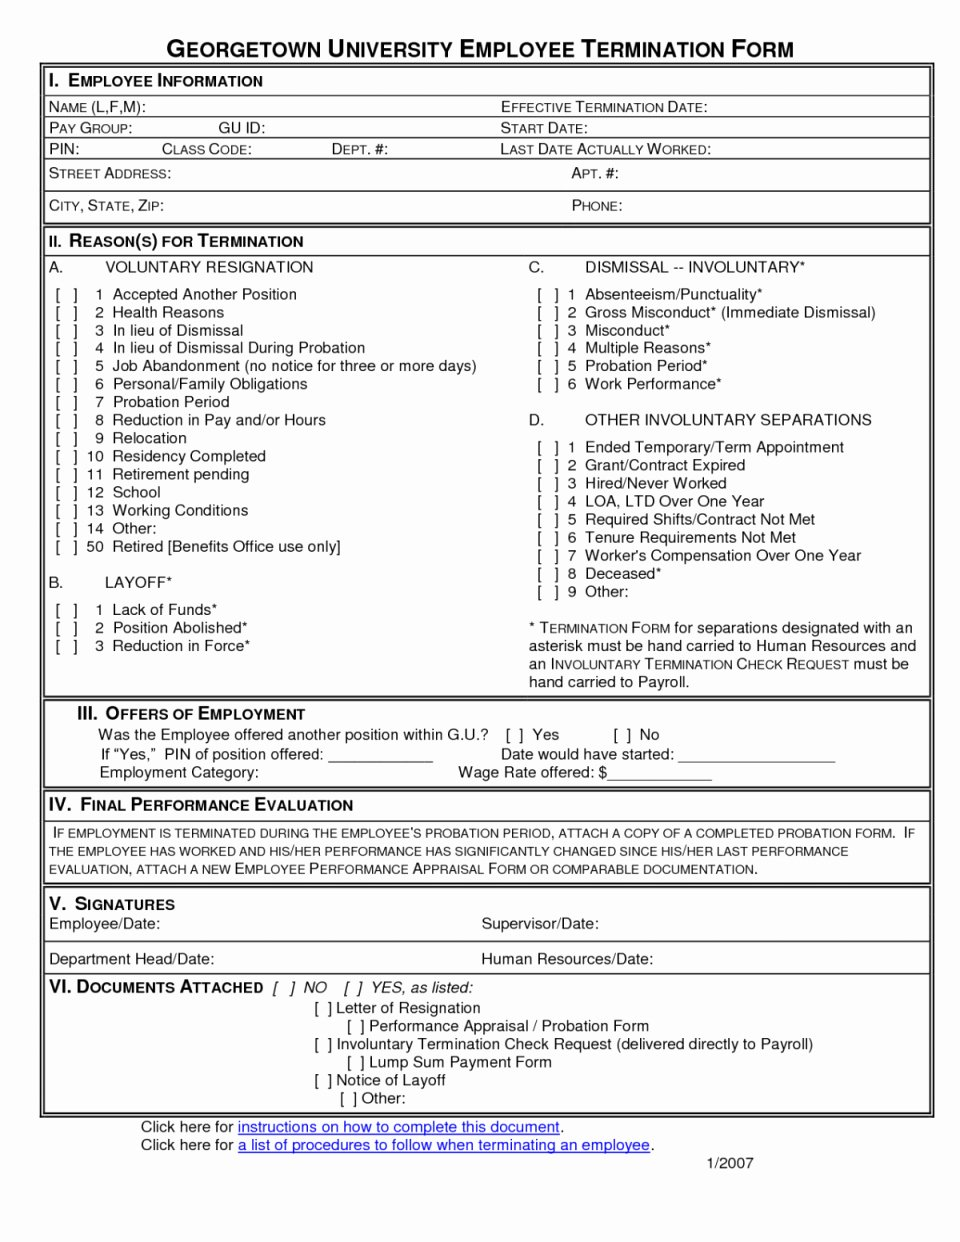 Employment Separation Agreement Template Fresh Employee Separation form